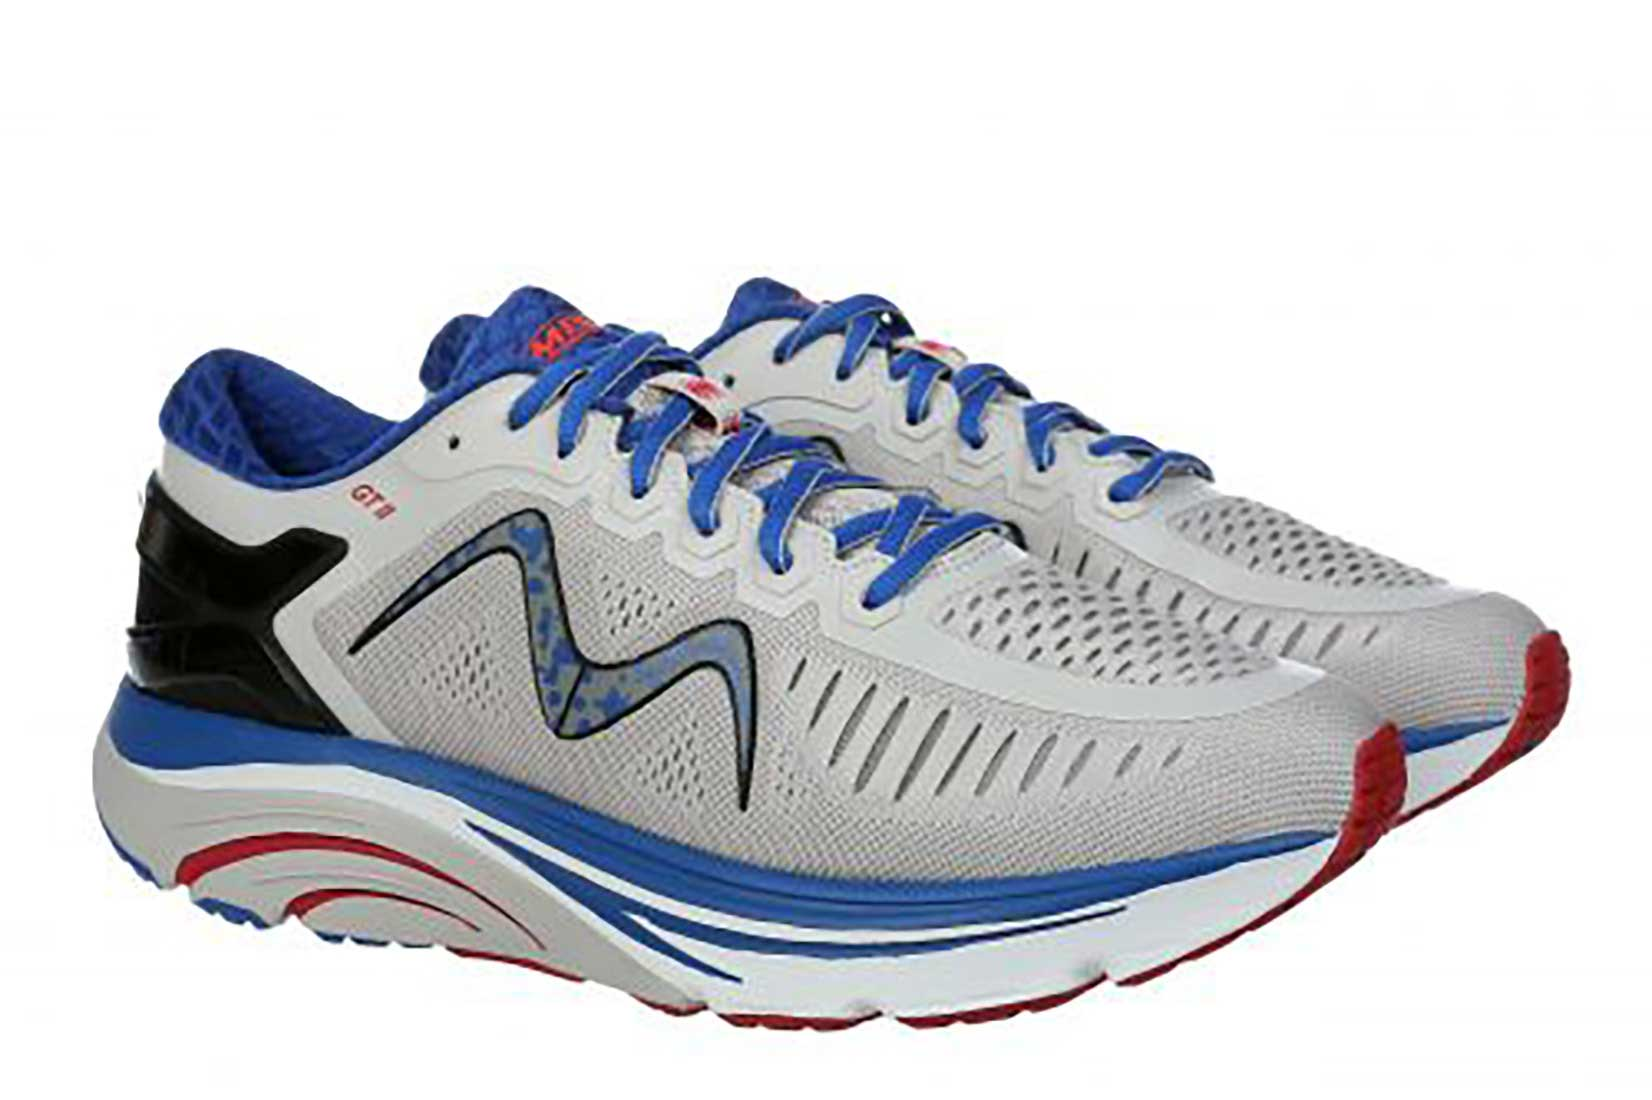 MBT Shoes Men's GT 2 Running Shoes 702023 Moderate